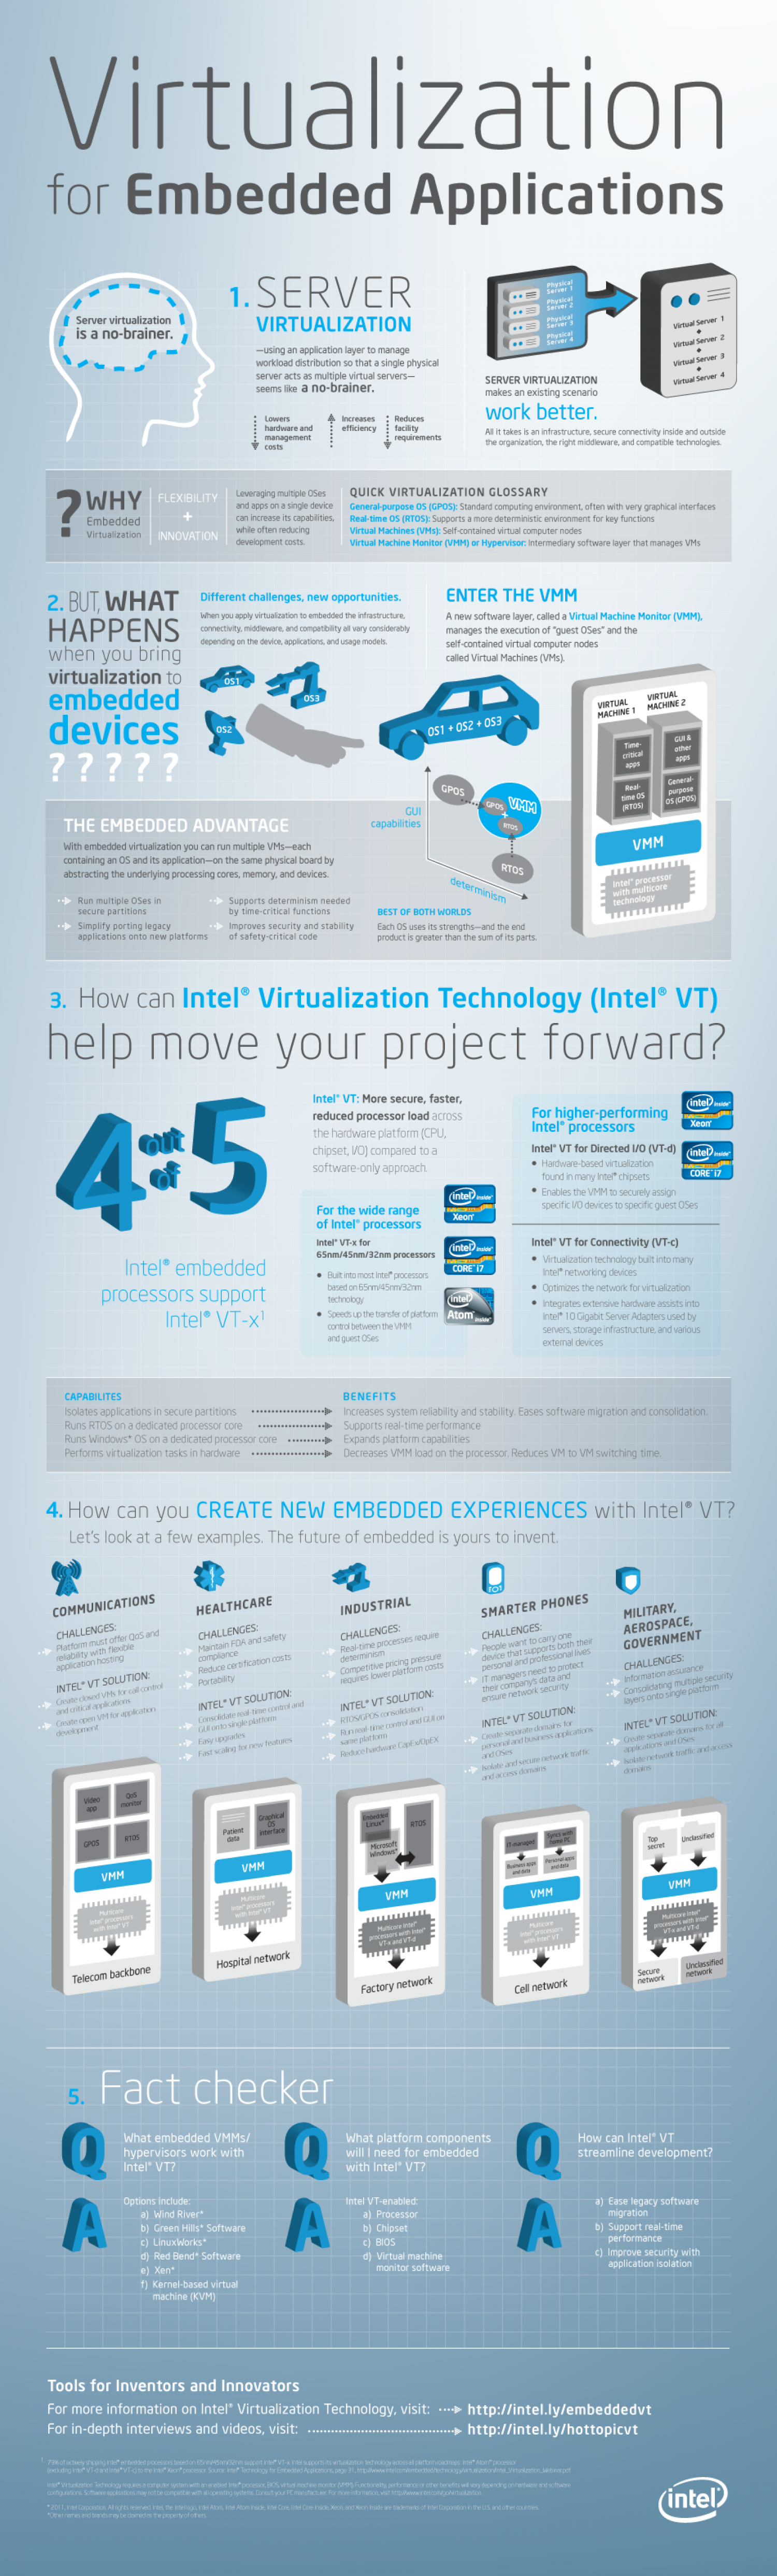 Virtualization in Embedded Applications Infographic